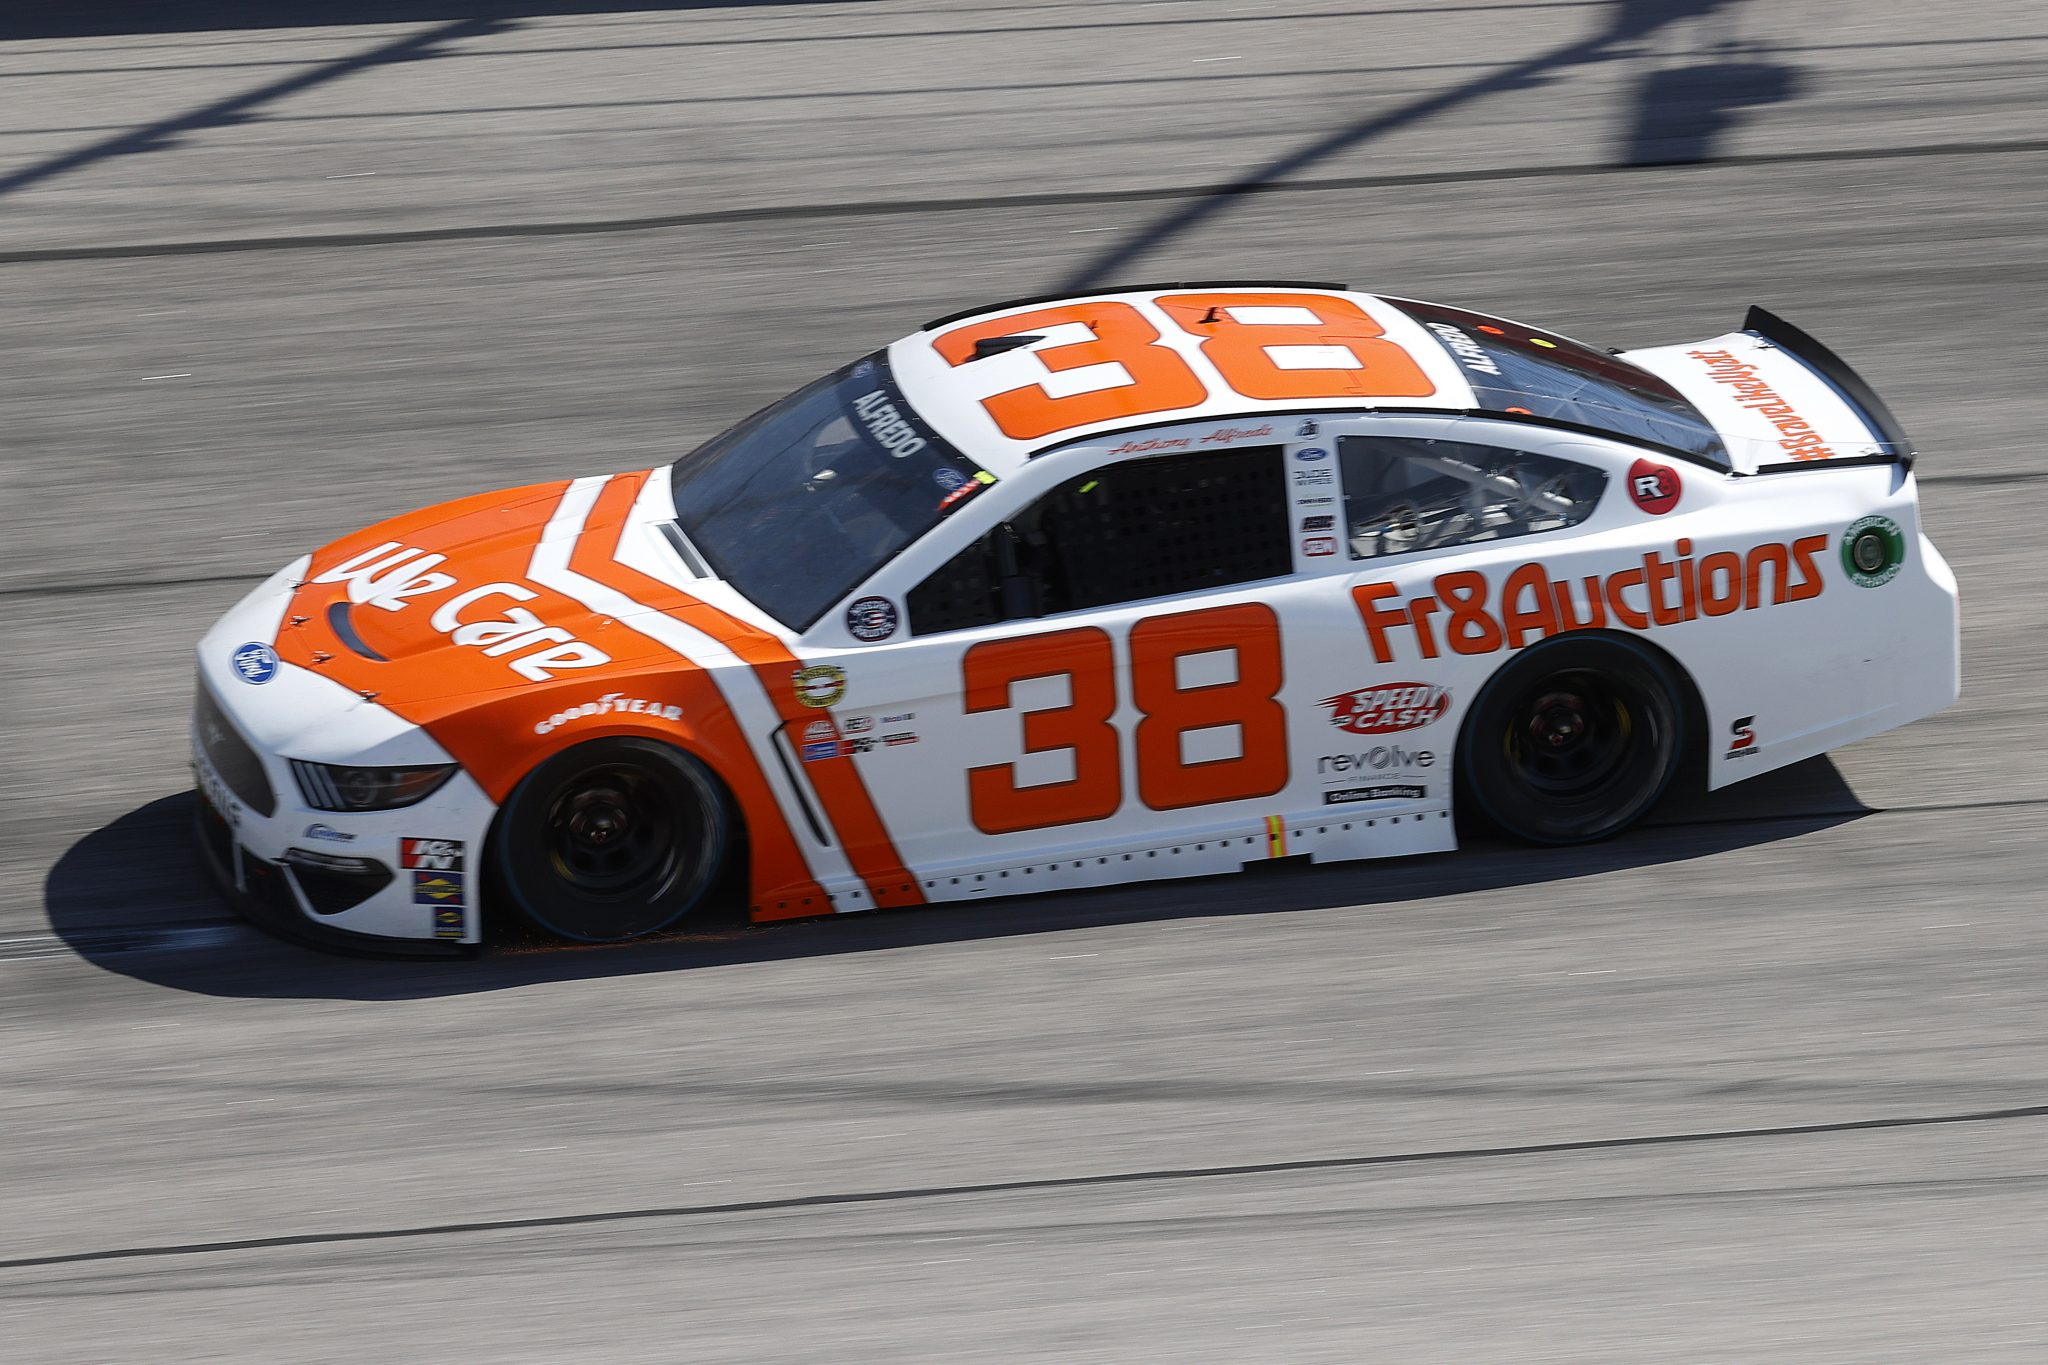 DARLINGTON, SOUTH CAROLINA - MAY 09:Anthony Alfredo, driver of the #38 We Care Ford, drives during the NASCAR Cup Series Goodyear 400 at Darlington Raceway on May 09, 2021 in Darlington, South Carolina. (Photo by Chris Graythen/Getty Images) | Getty Images